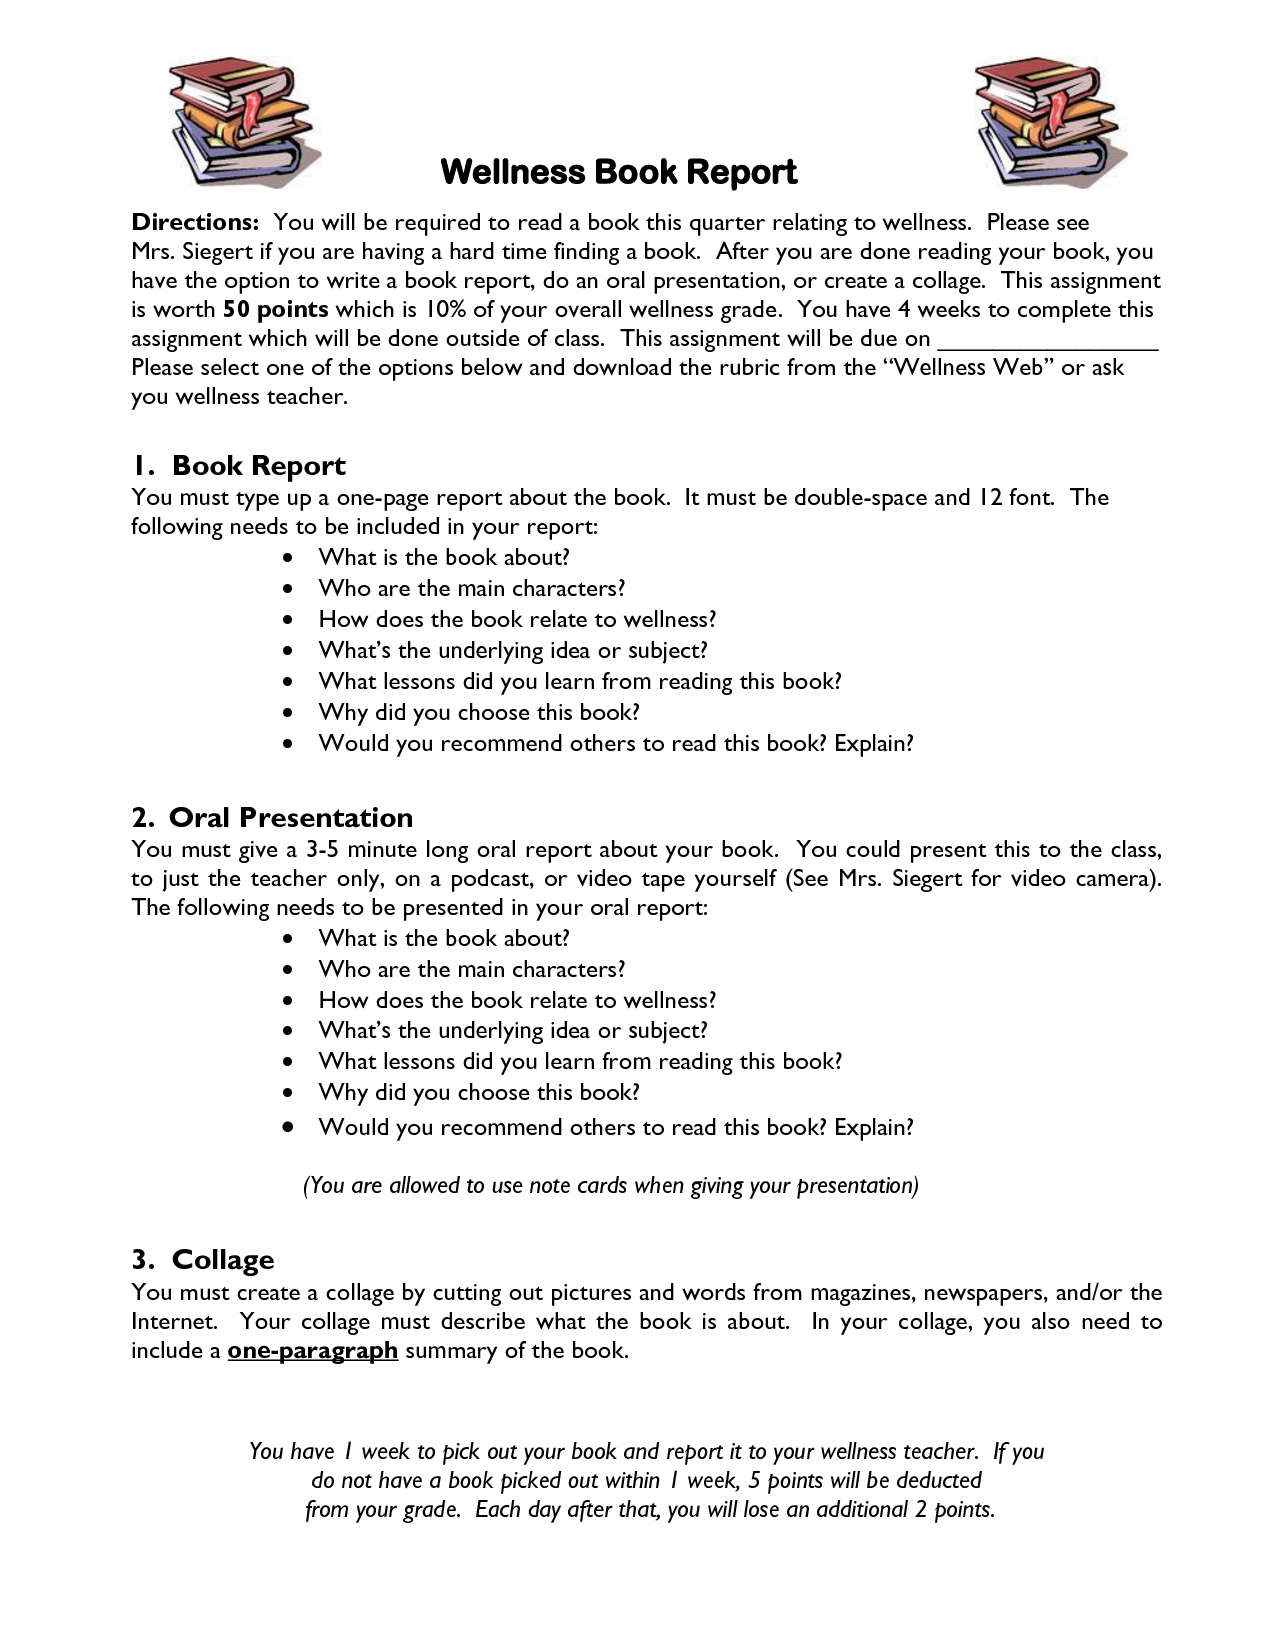 Last Minute Quick Tips for Writing an A + Book Report